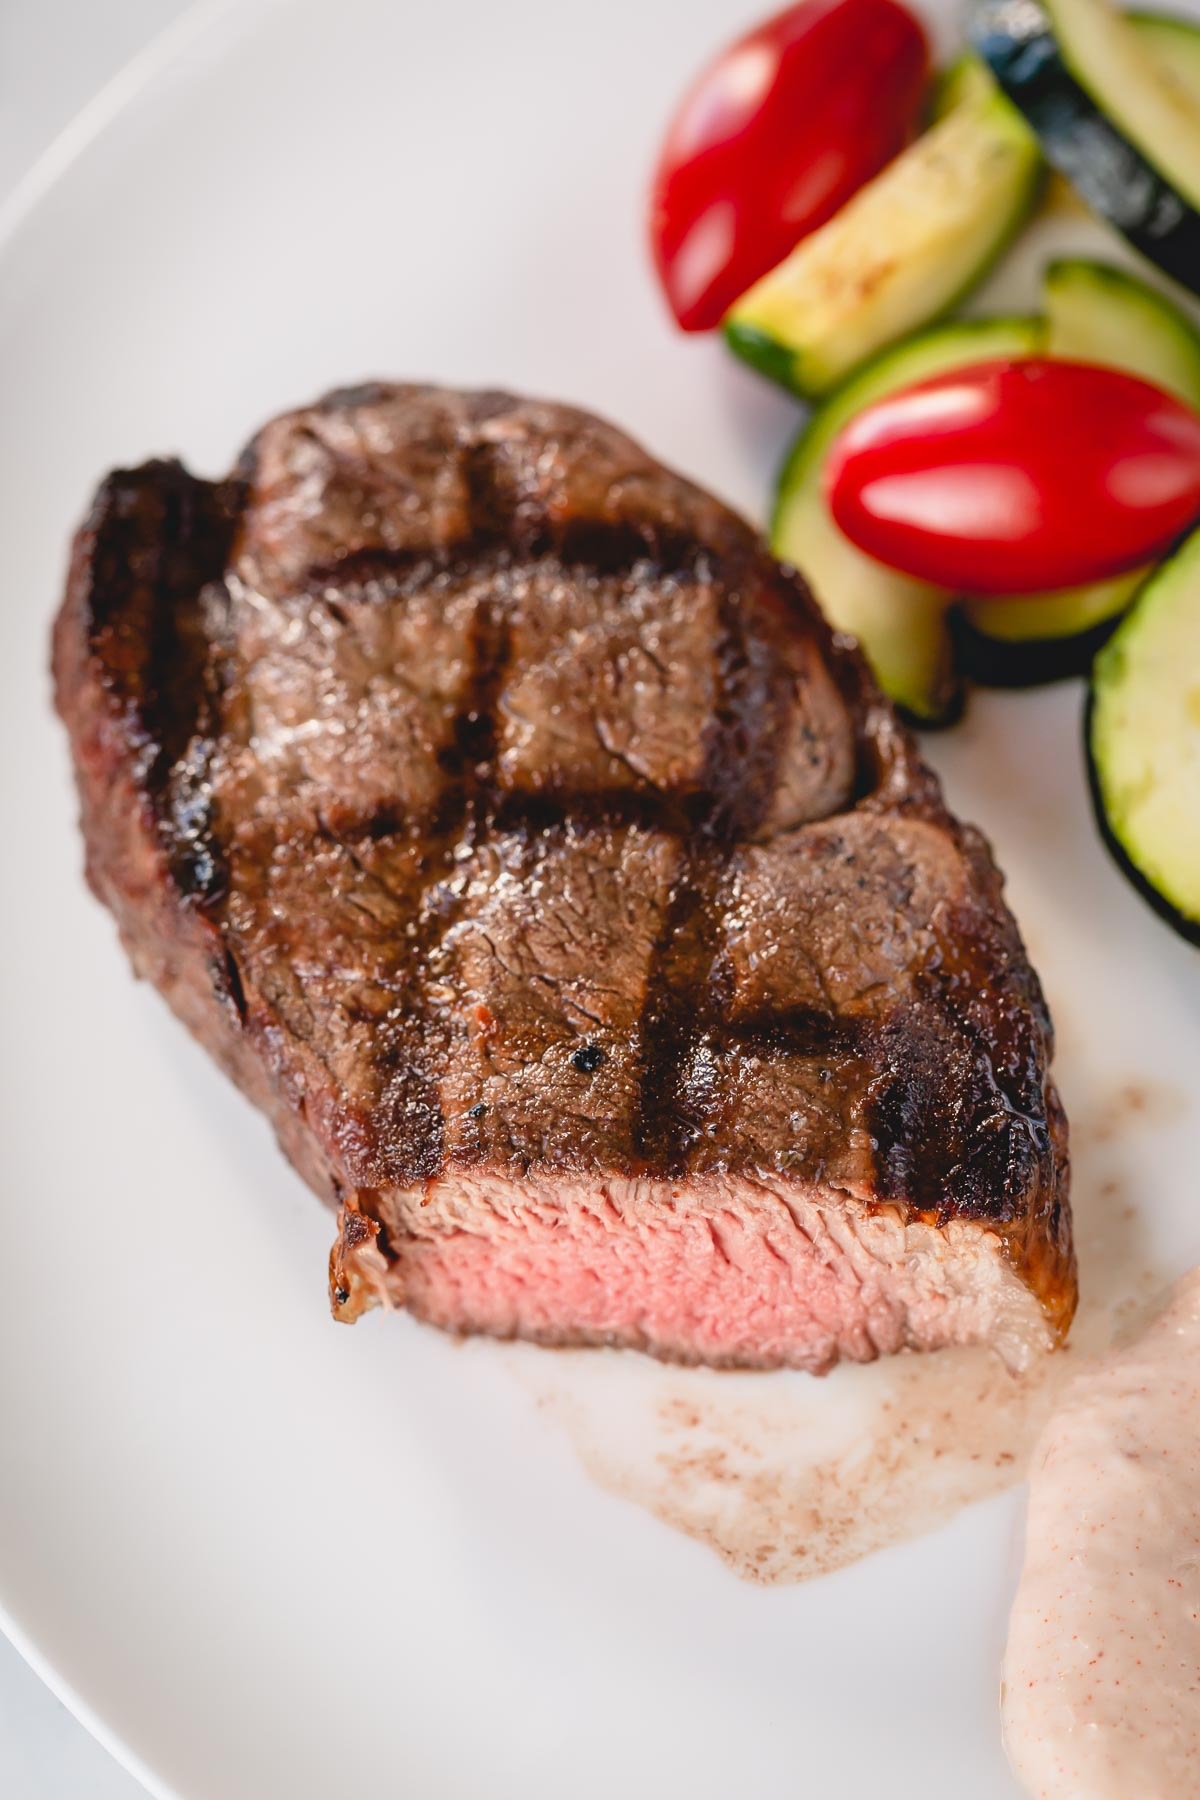 A whole grilled filet mignon on a white plate with zucchini and cherry tomatoes on the side.